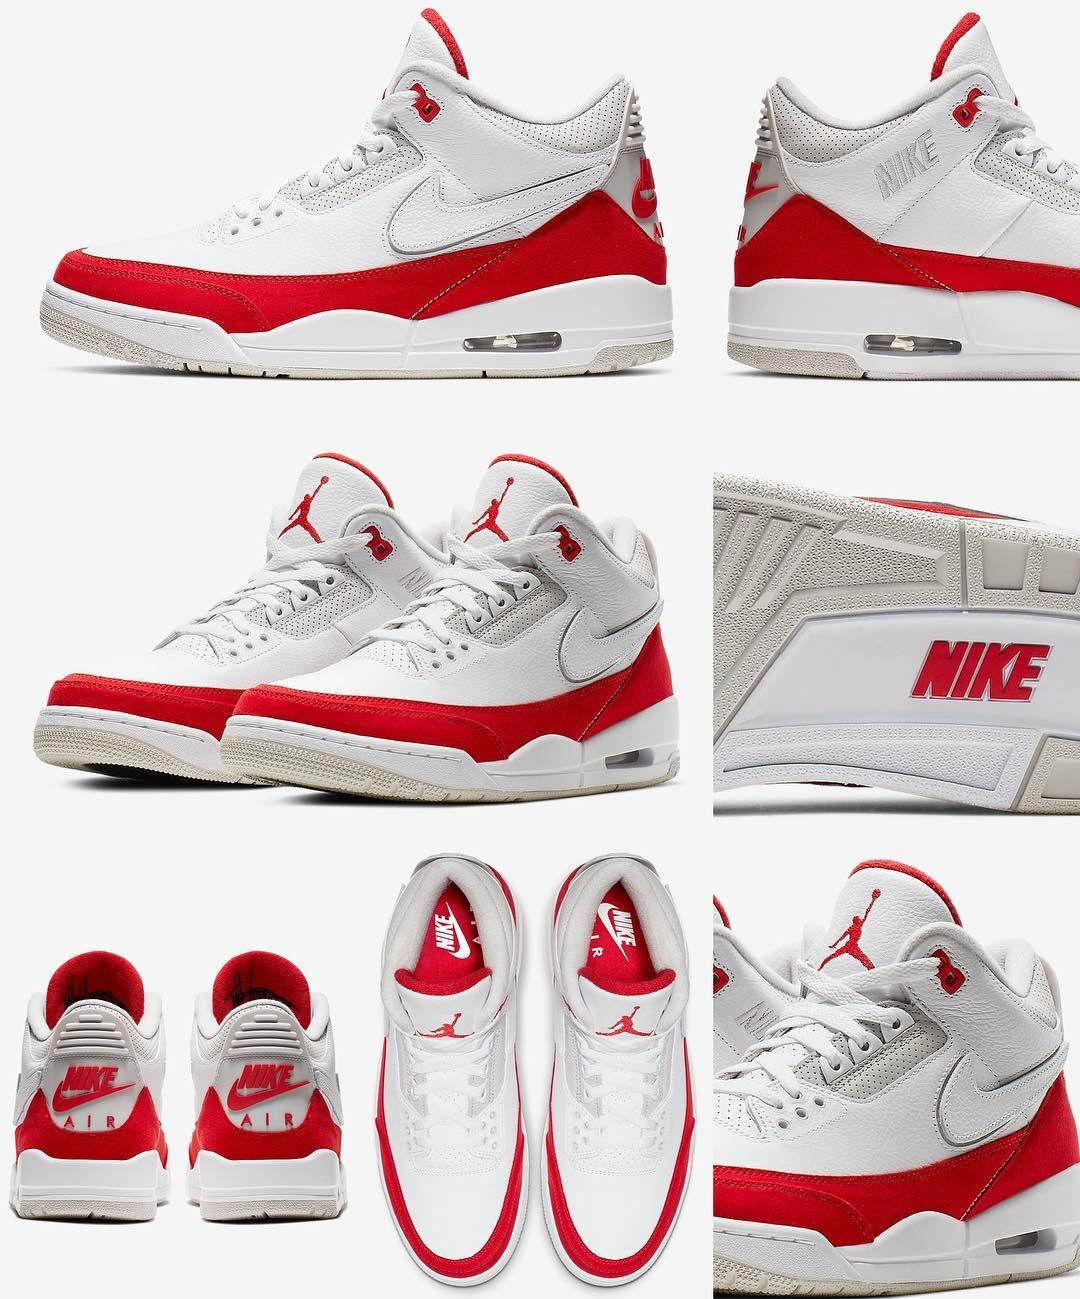 "separation shoes 40f7f bc206 zSneakerHeadz on Instagram  ""Official Images of the 2019 Air Jordan Retro 3  TH SP  AirMax March 30th, 2019 White University Red-Neutral Grey Removable  ..."